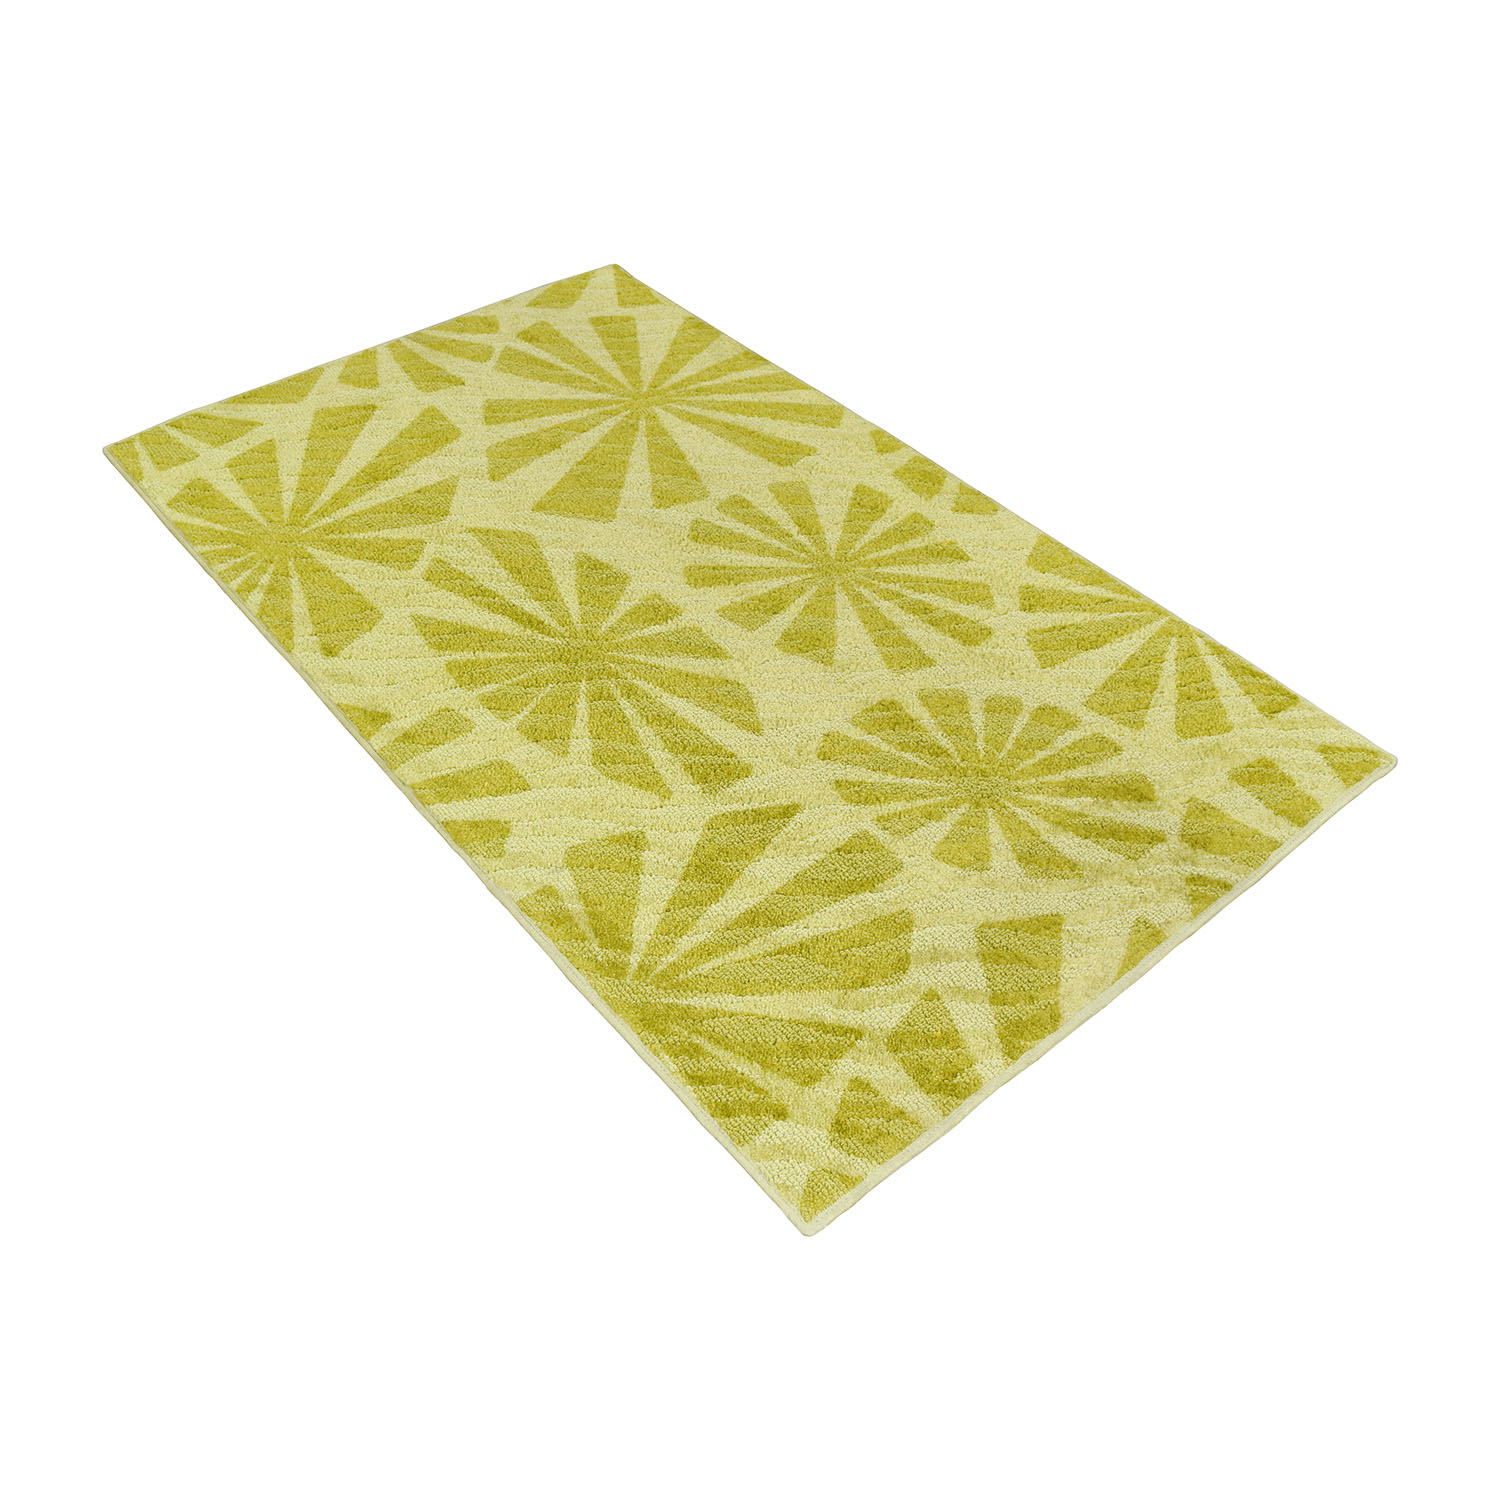 Shaw Living Angela Adams for Shaw Living Two-Toned Green Rug used